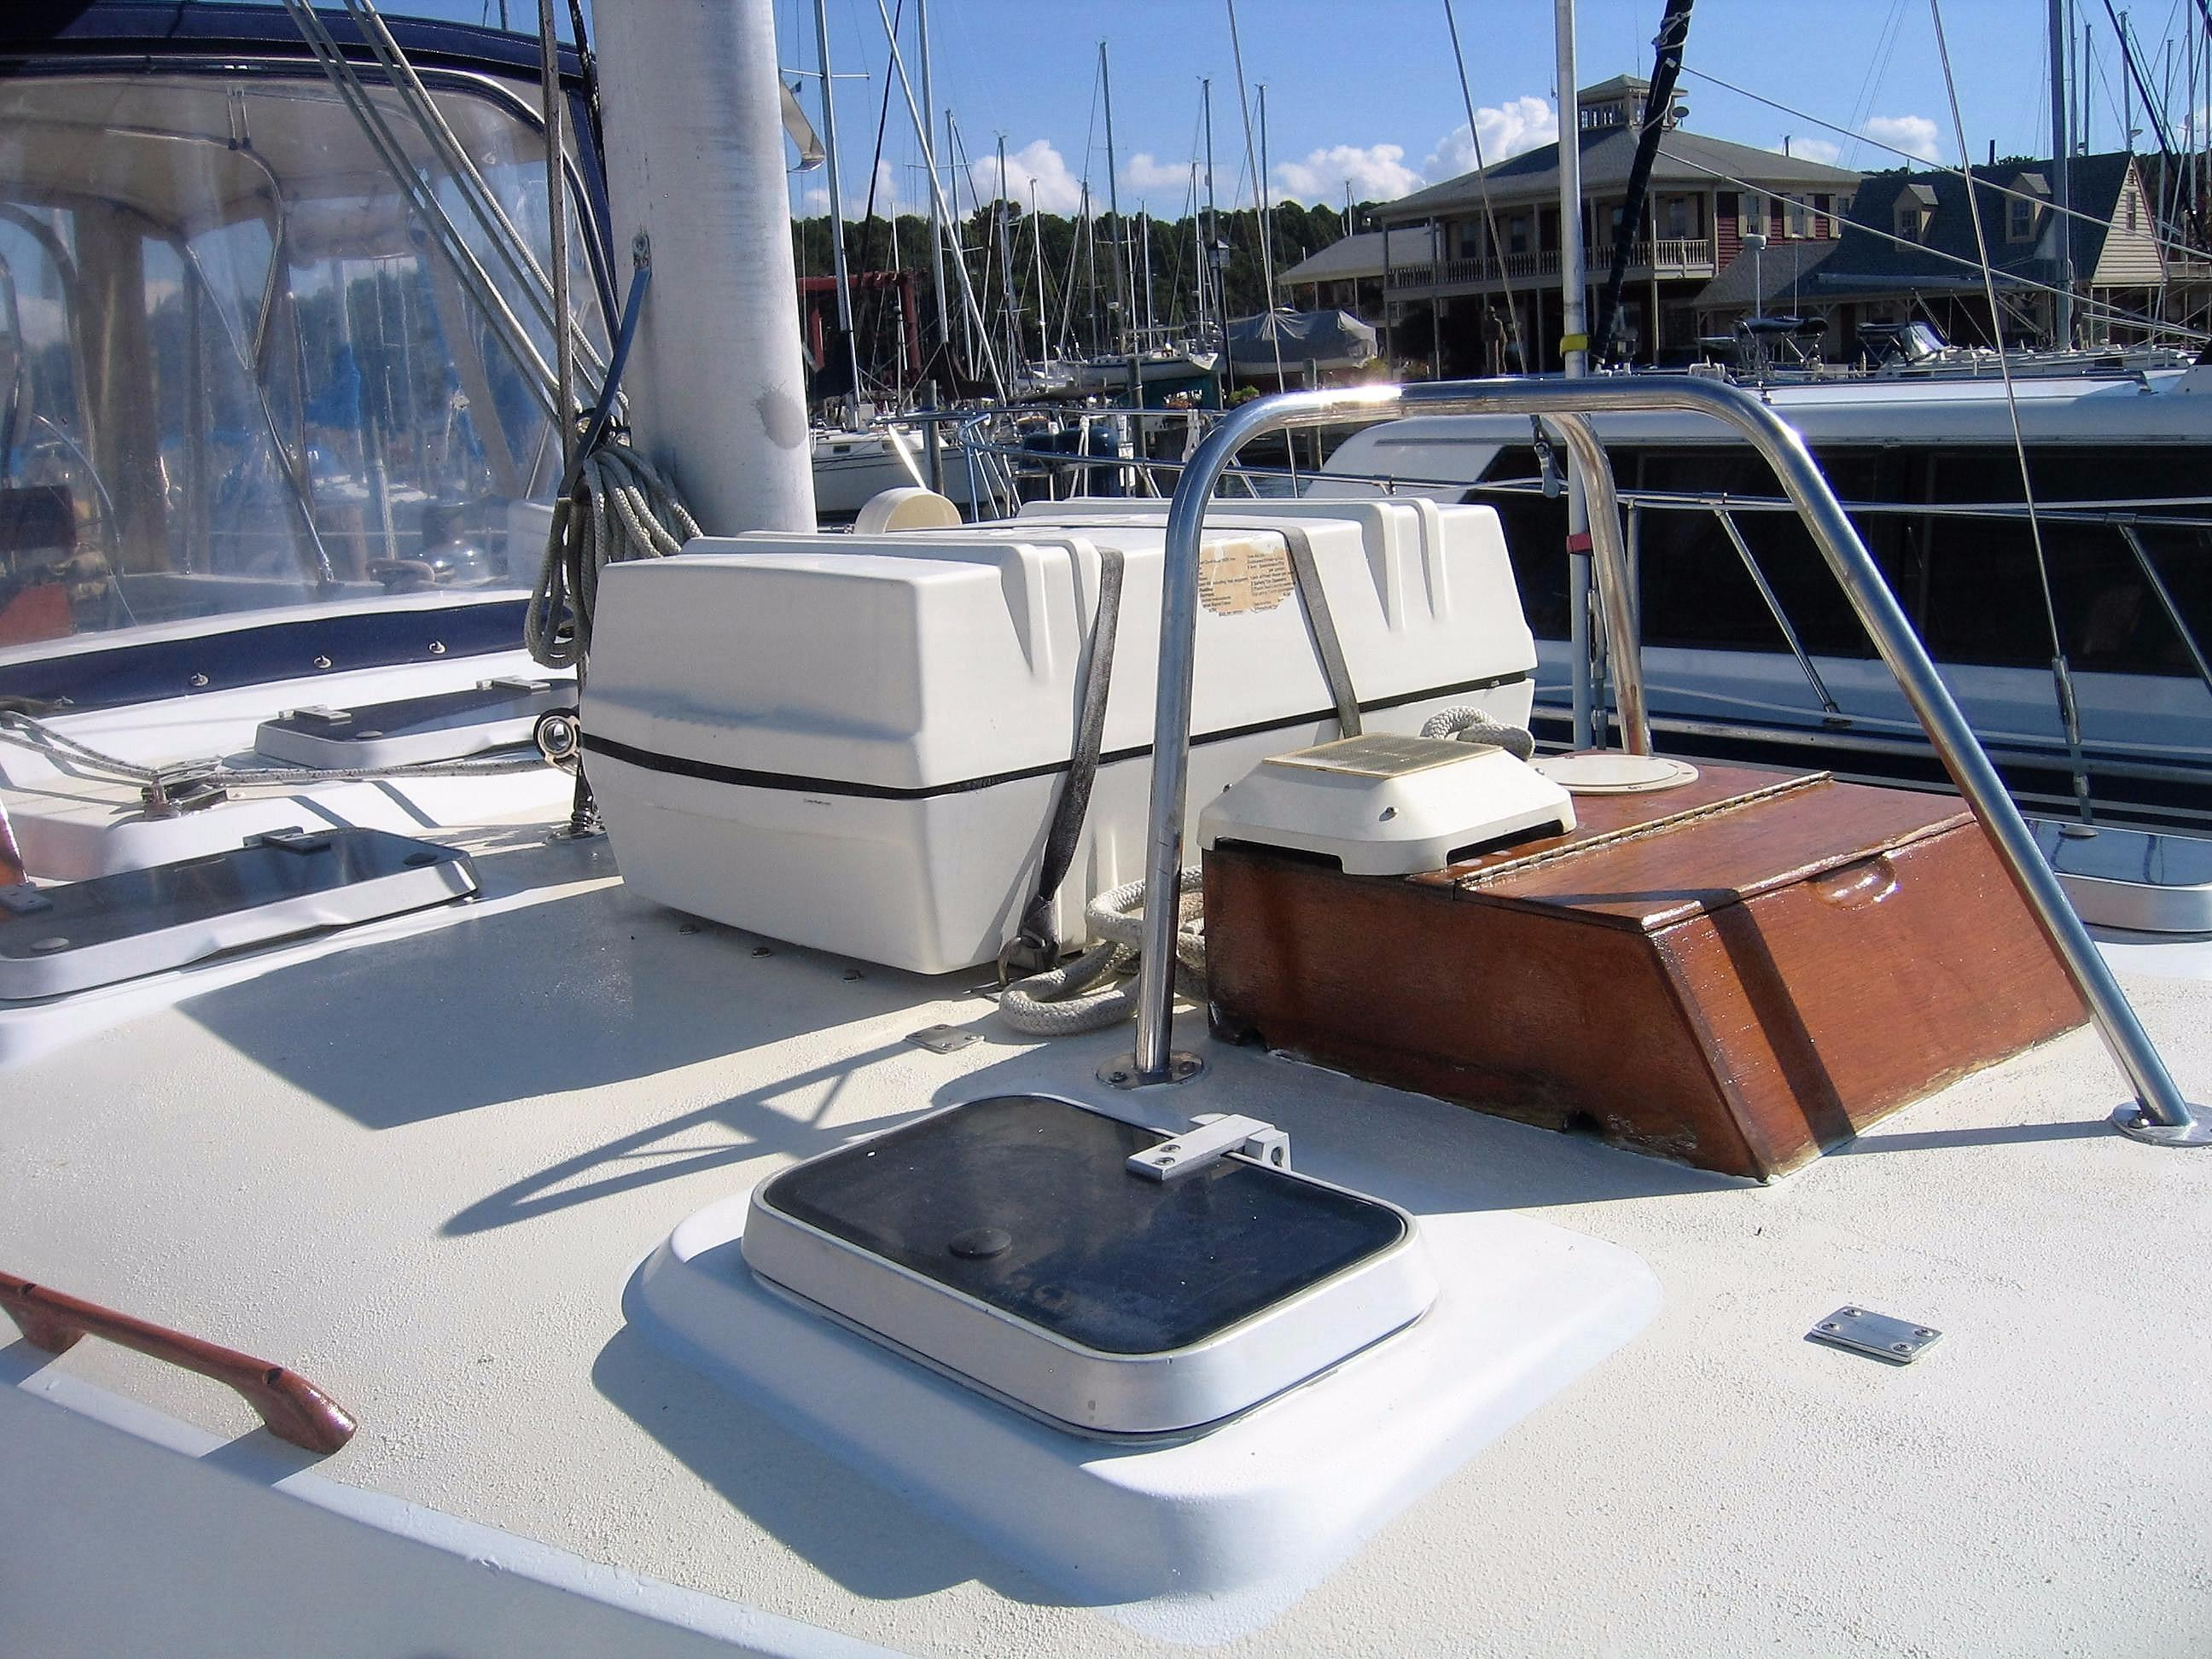 Foredeck with Liferaft